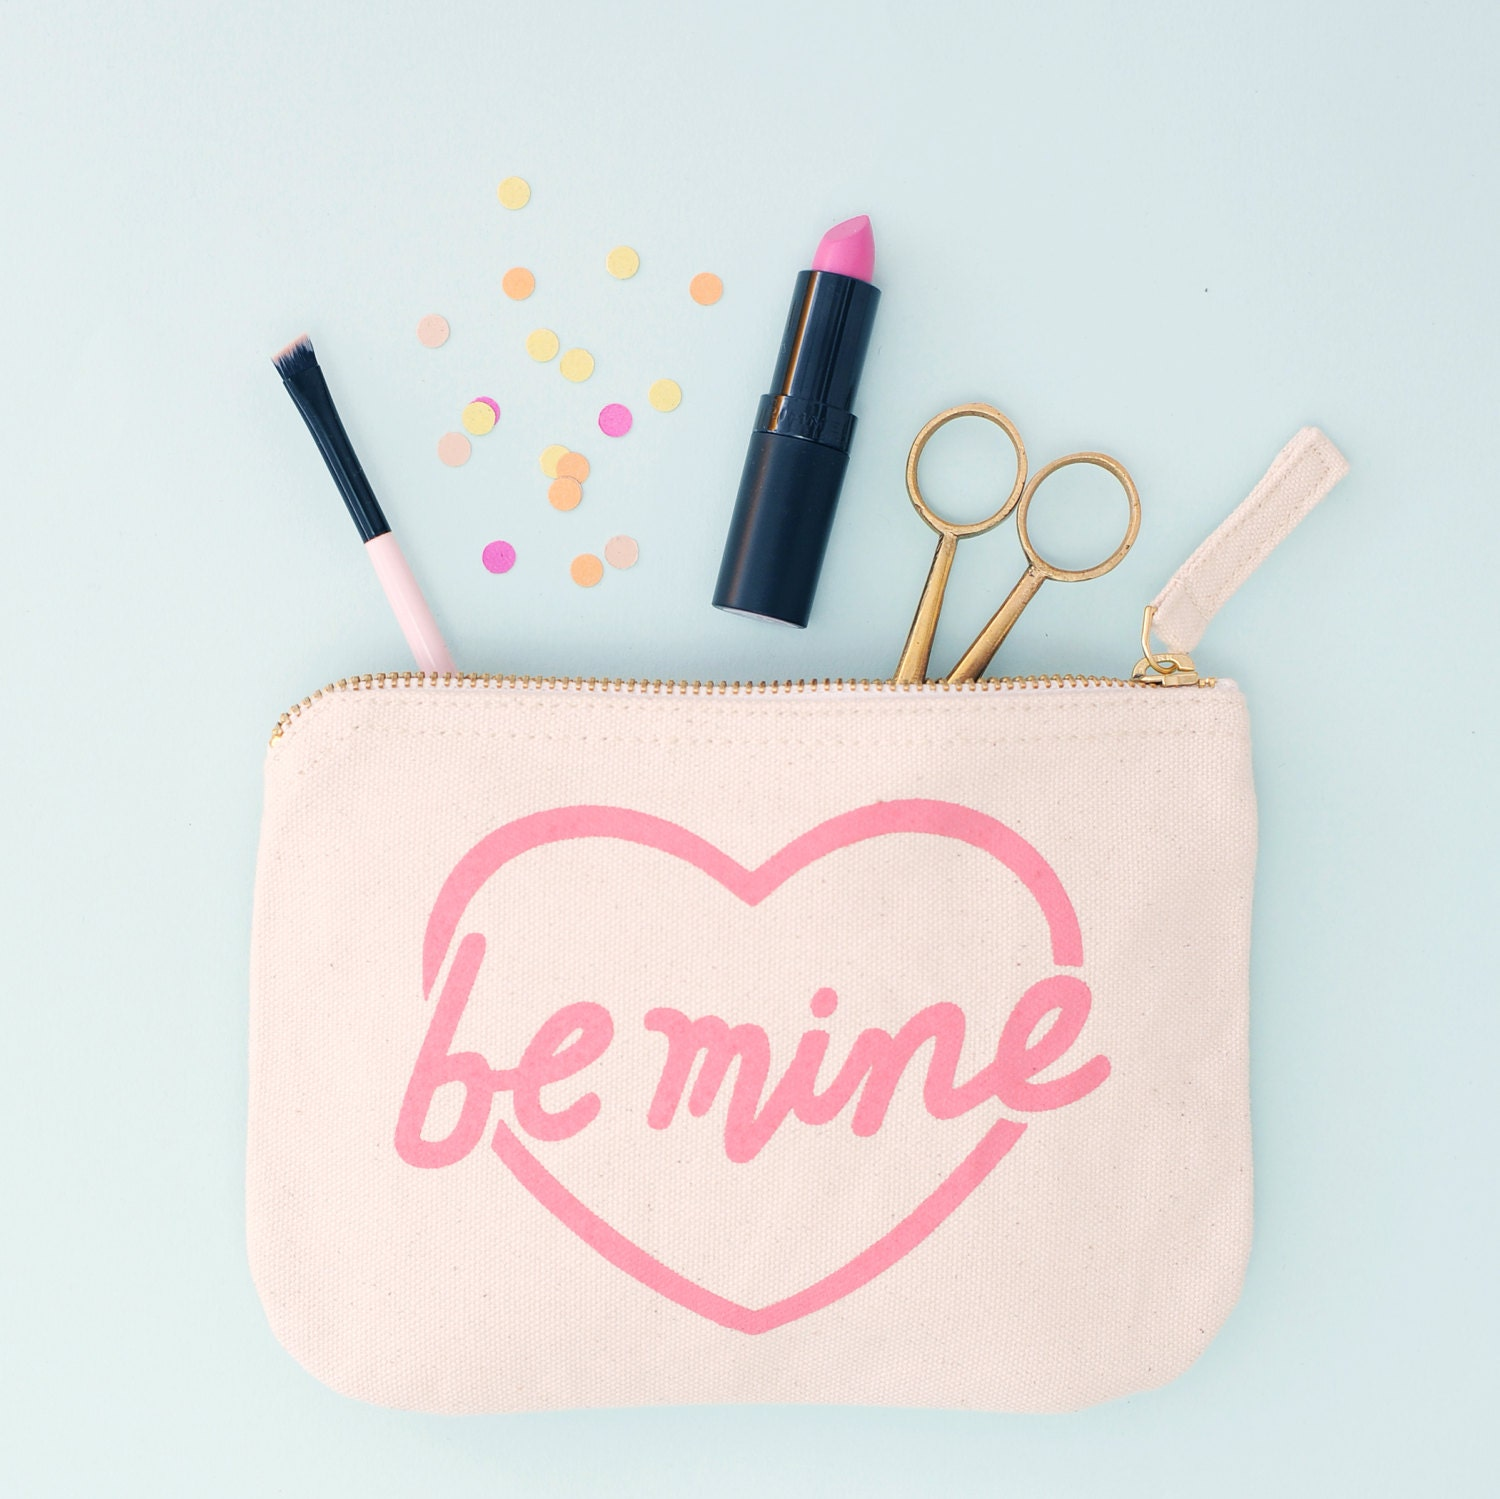 Small Zipper Bag  Cosmetics Purse  Gift for Her  Travel Makeup Bag  Be Mine Little Canvas Pouch  Alphabet Bags